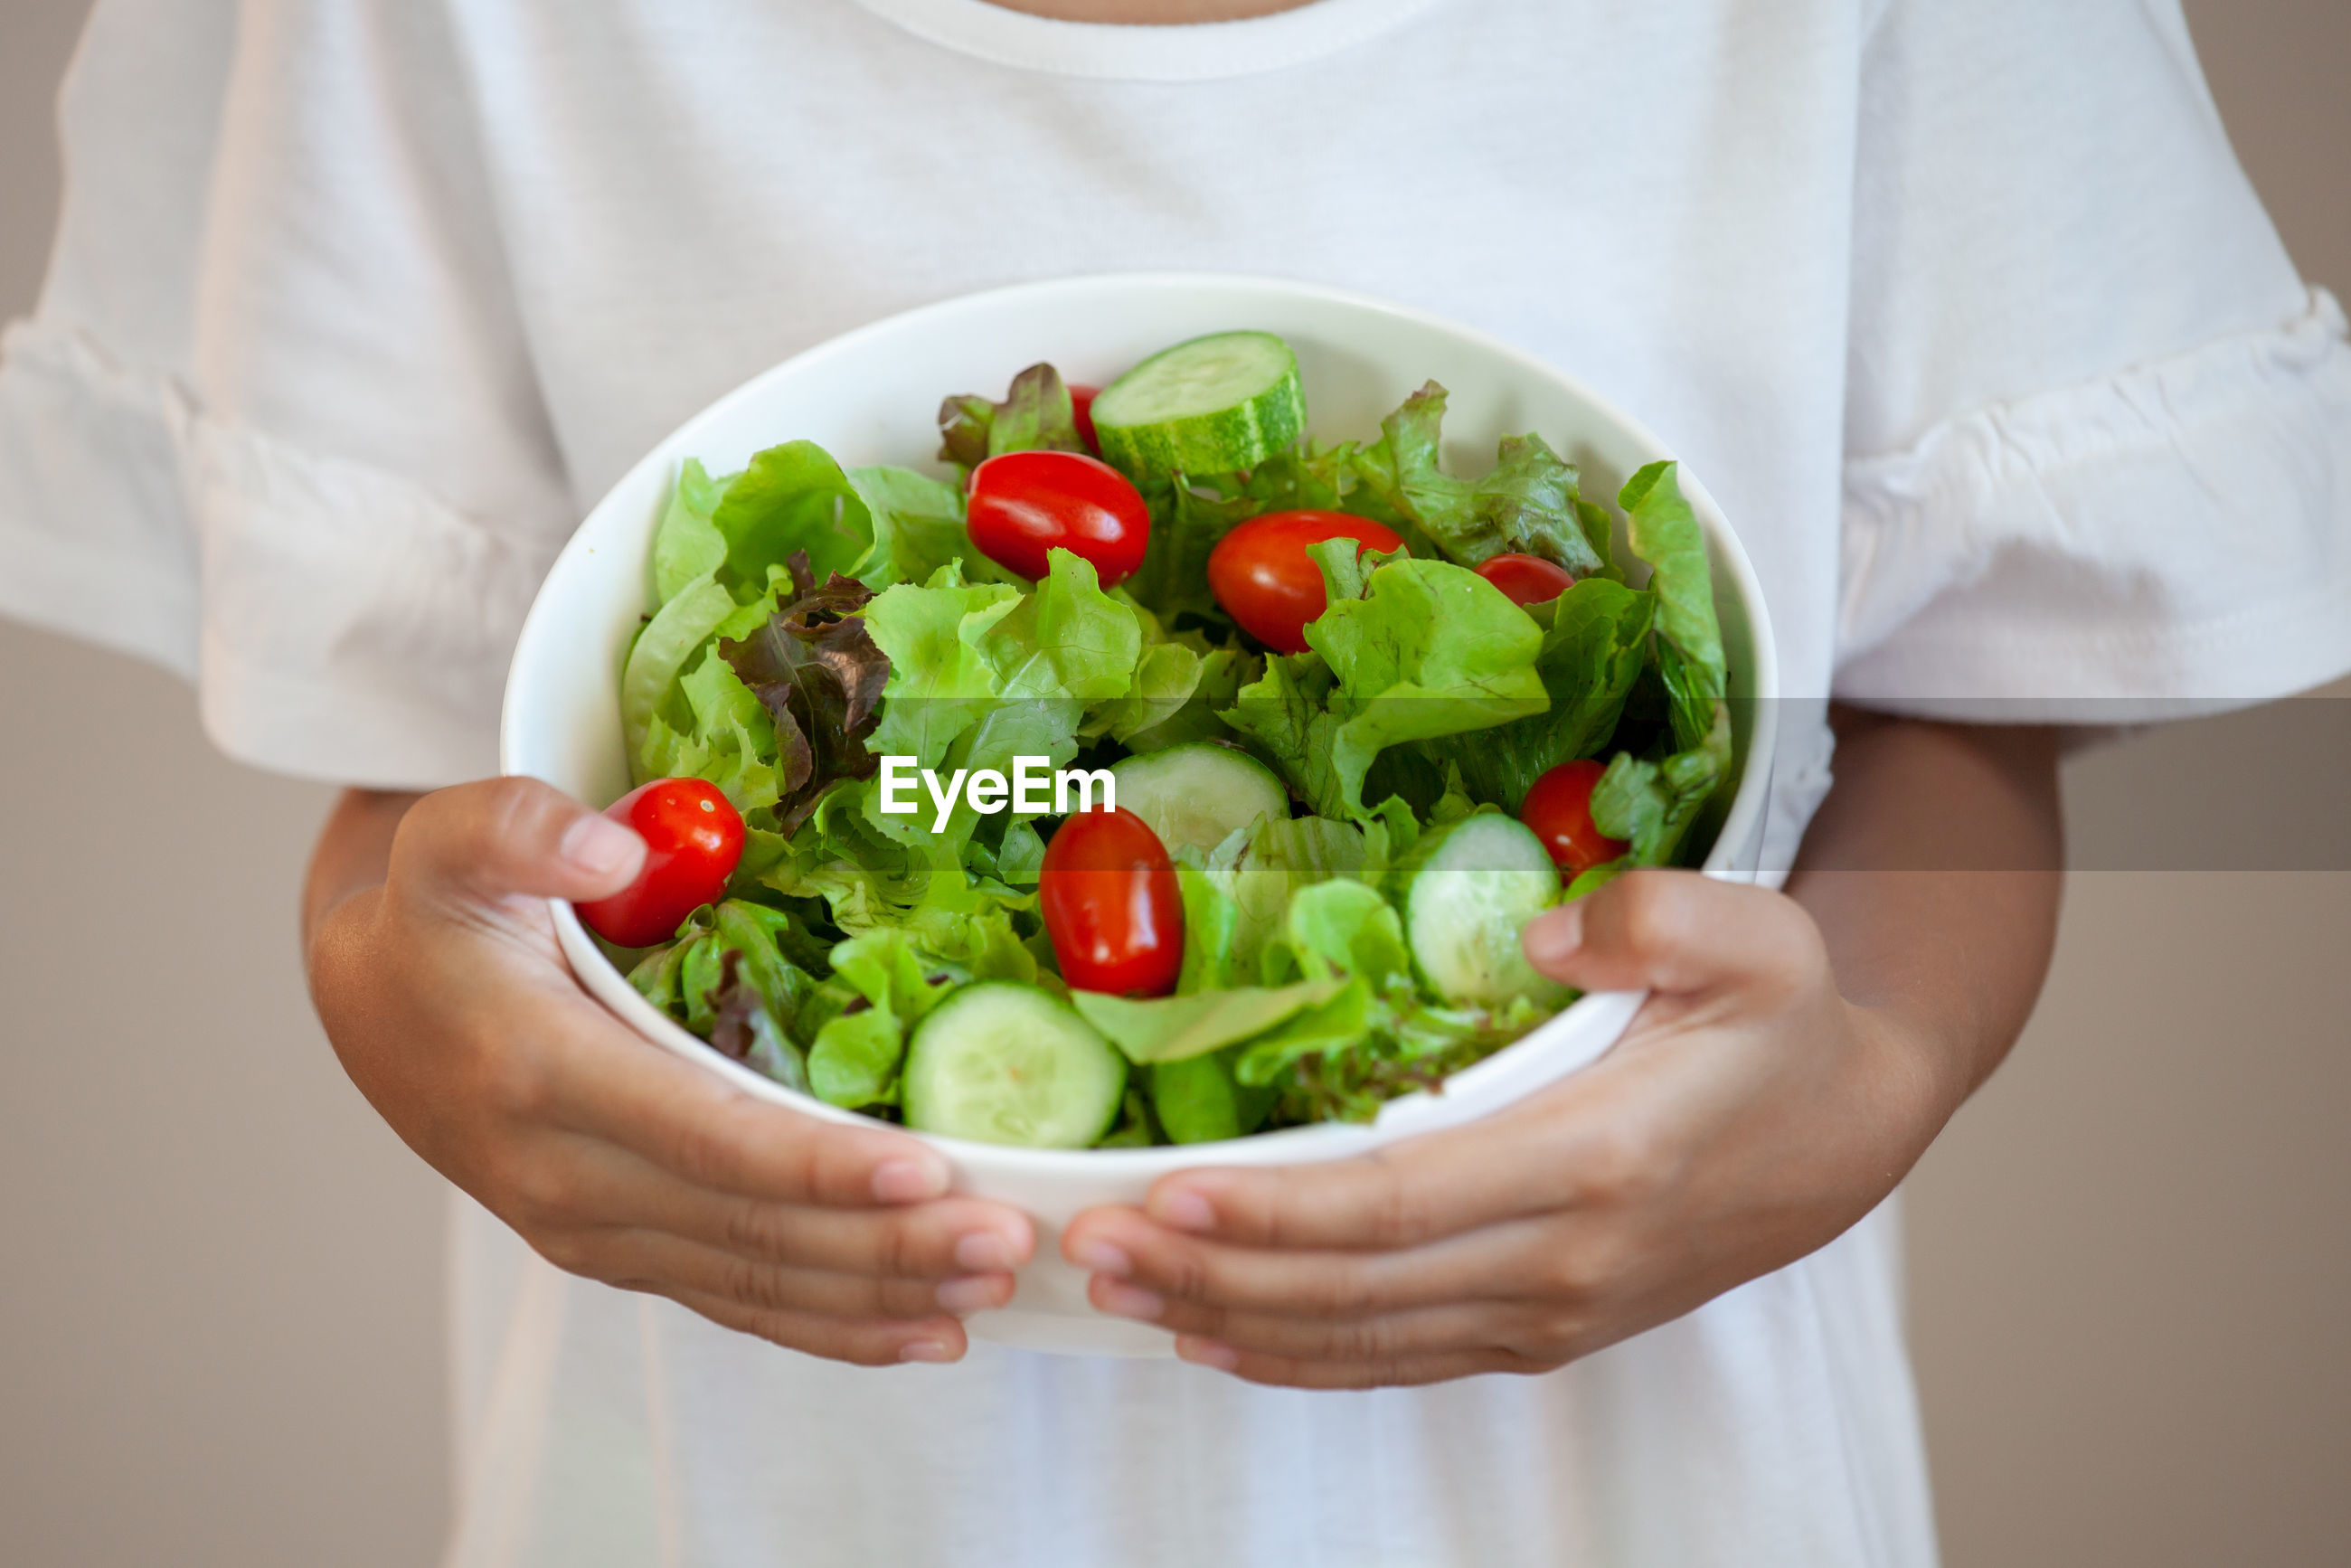 Midsection of girl holding salad in bowl